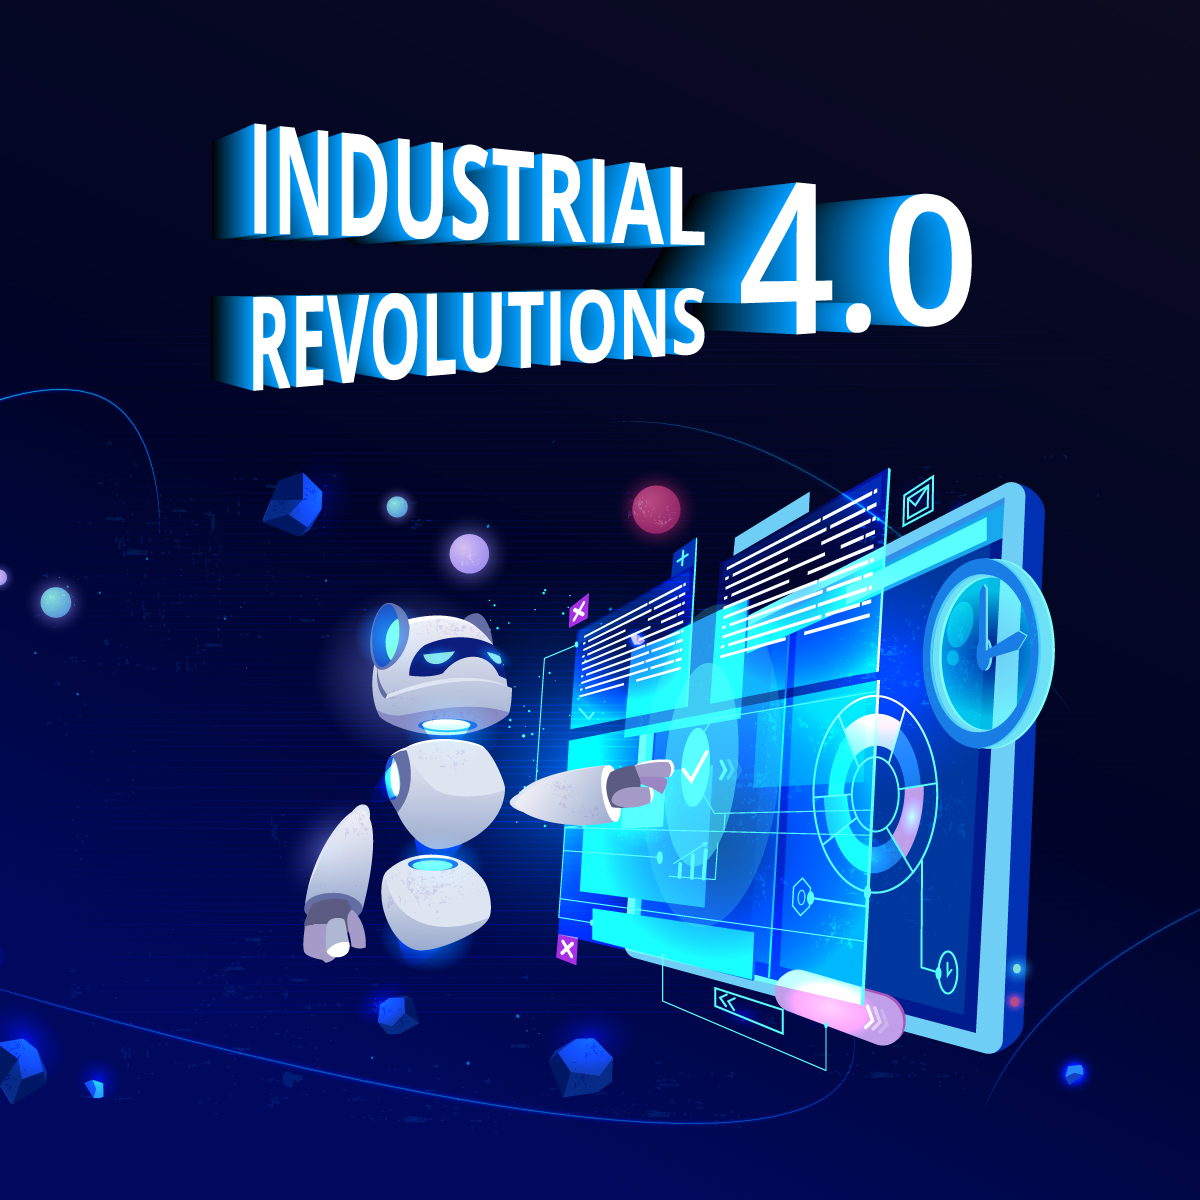 Industrial Revo4.0 OCT2019 02